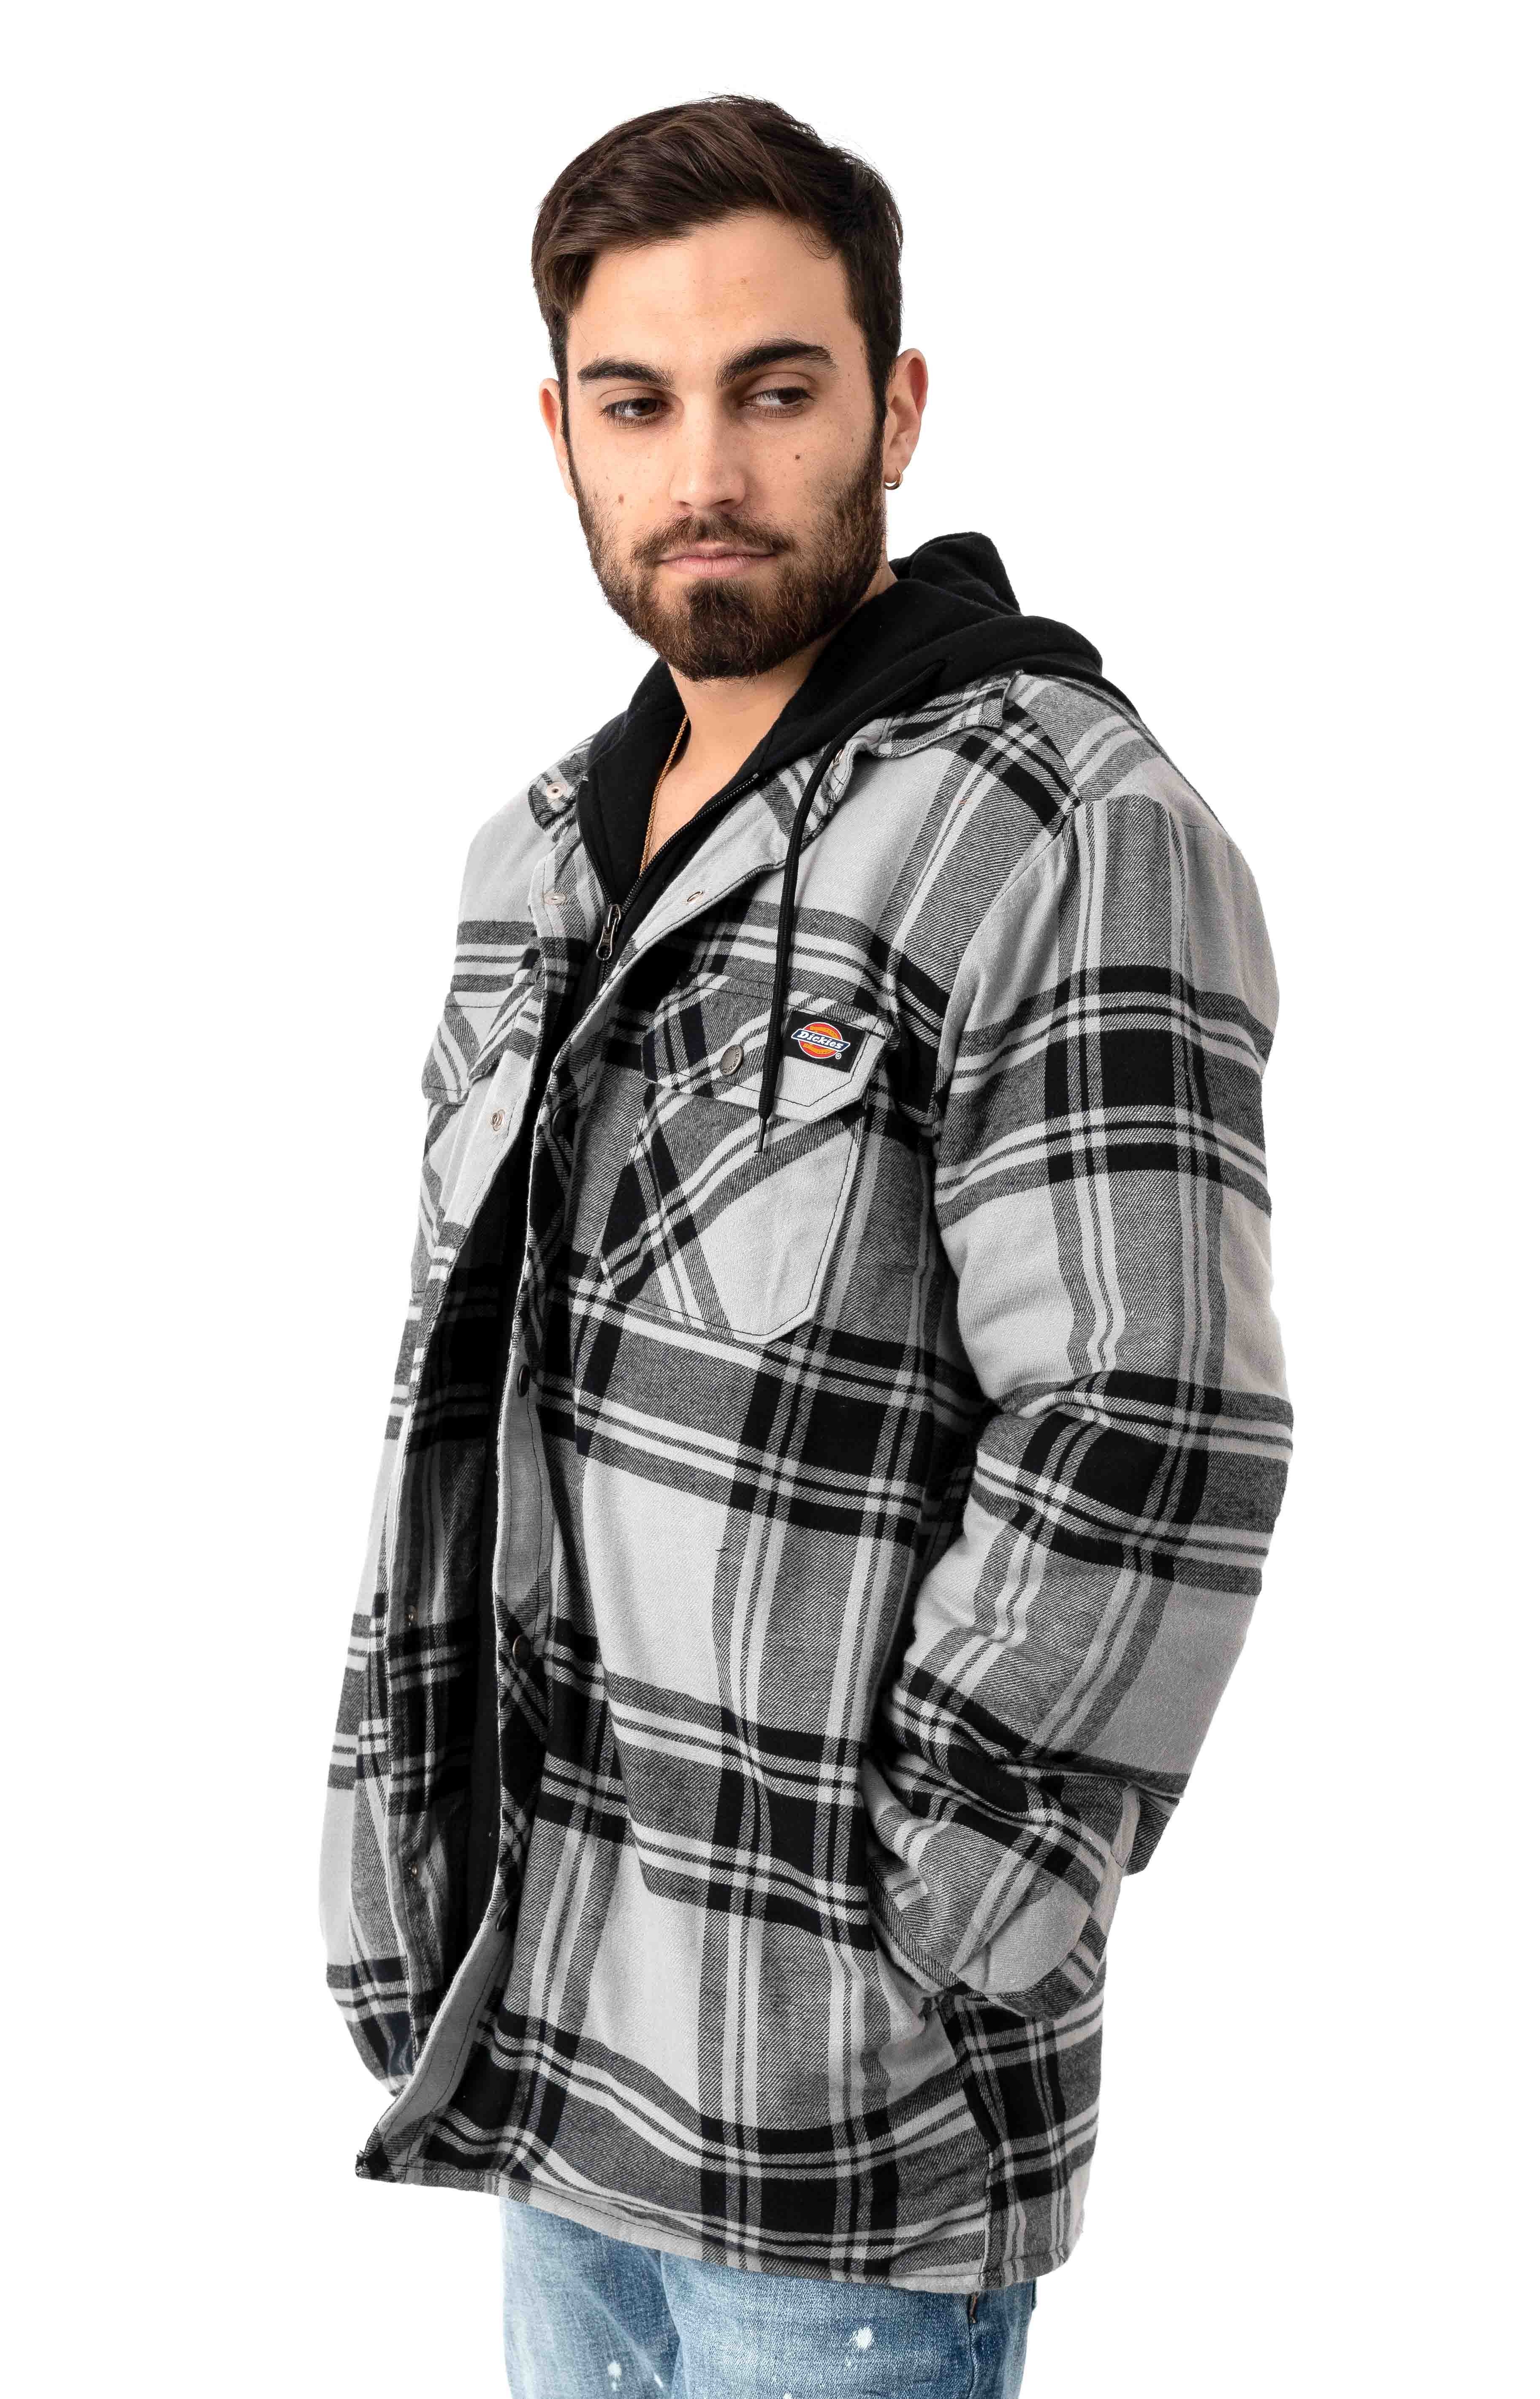 (TJ201POK) Relaxed Fit Icon Hooded Quilted Shirt Jacket - Gray/Black Plaid 2